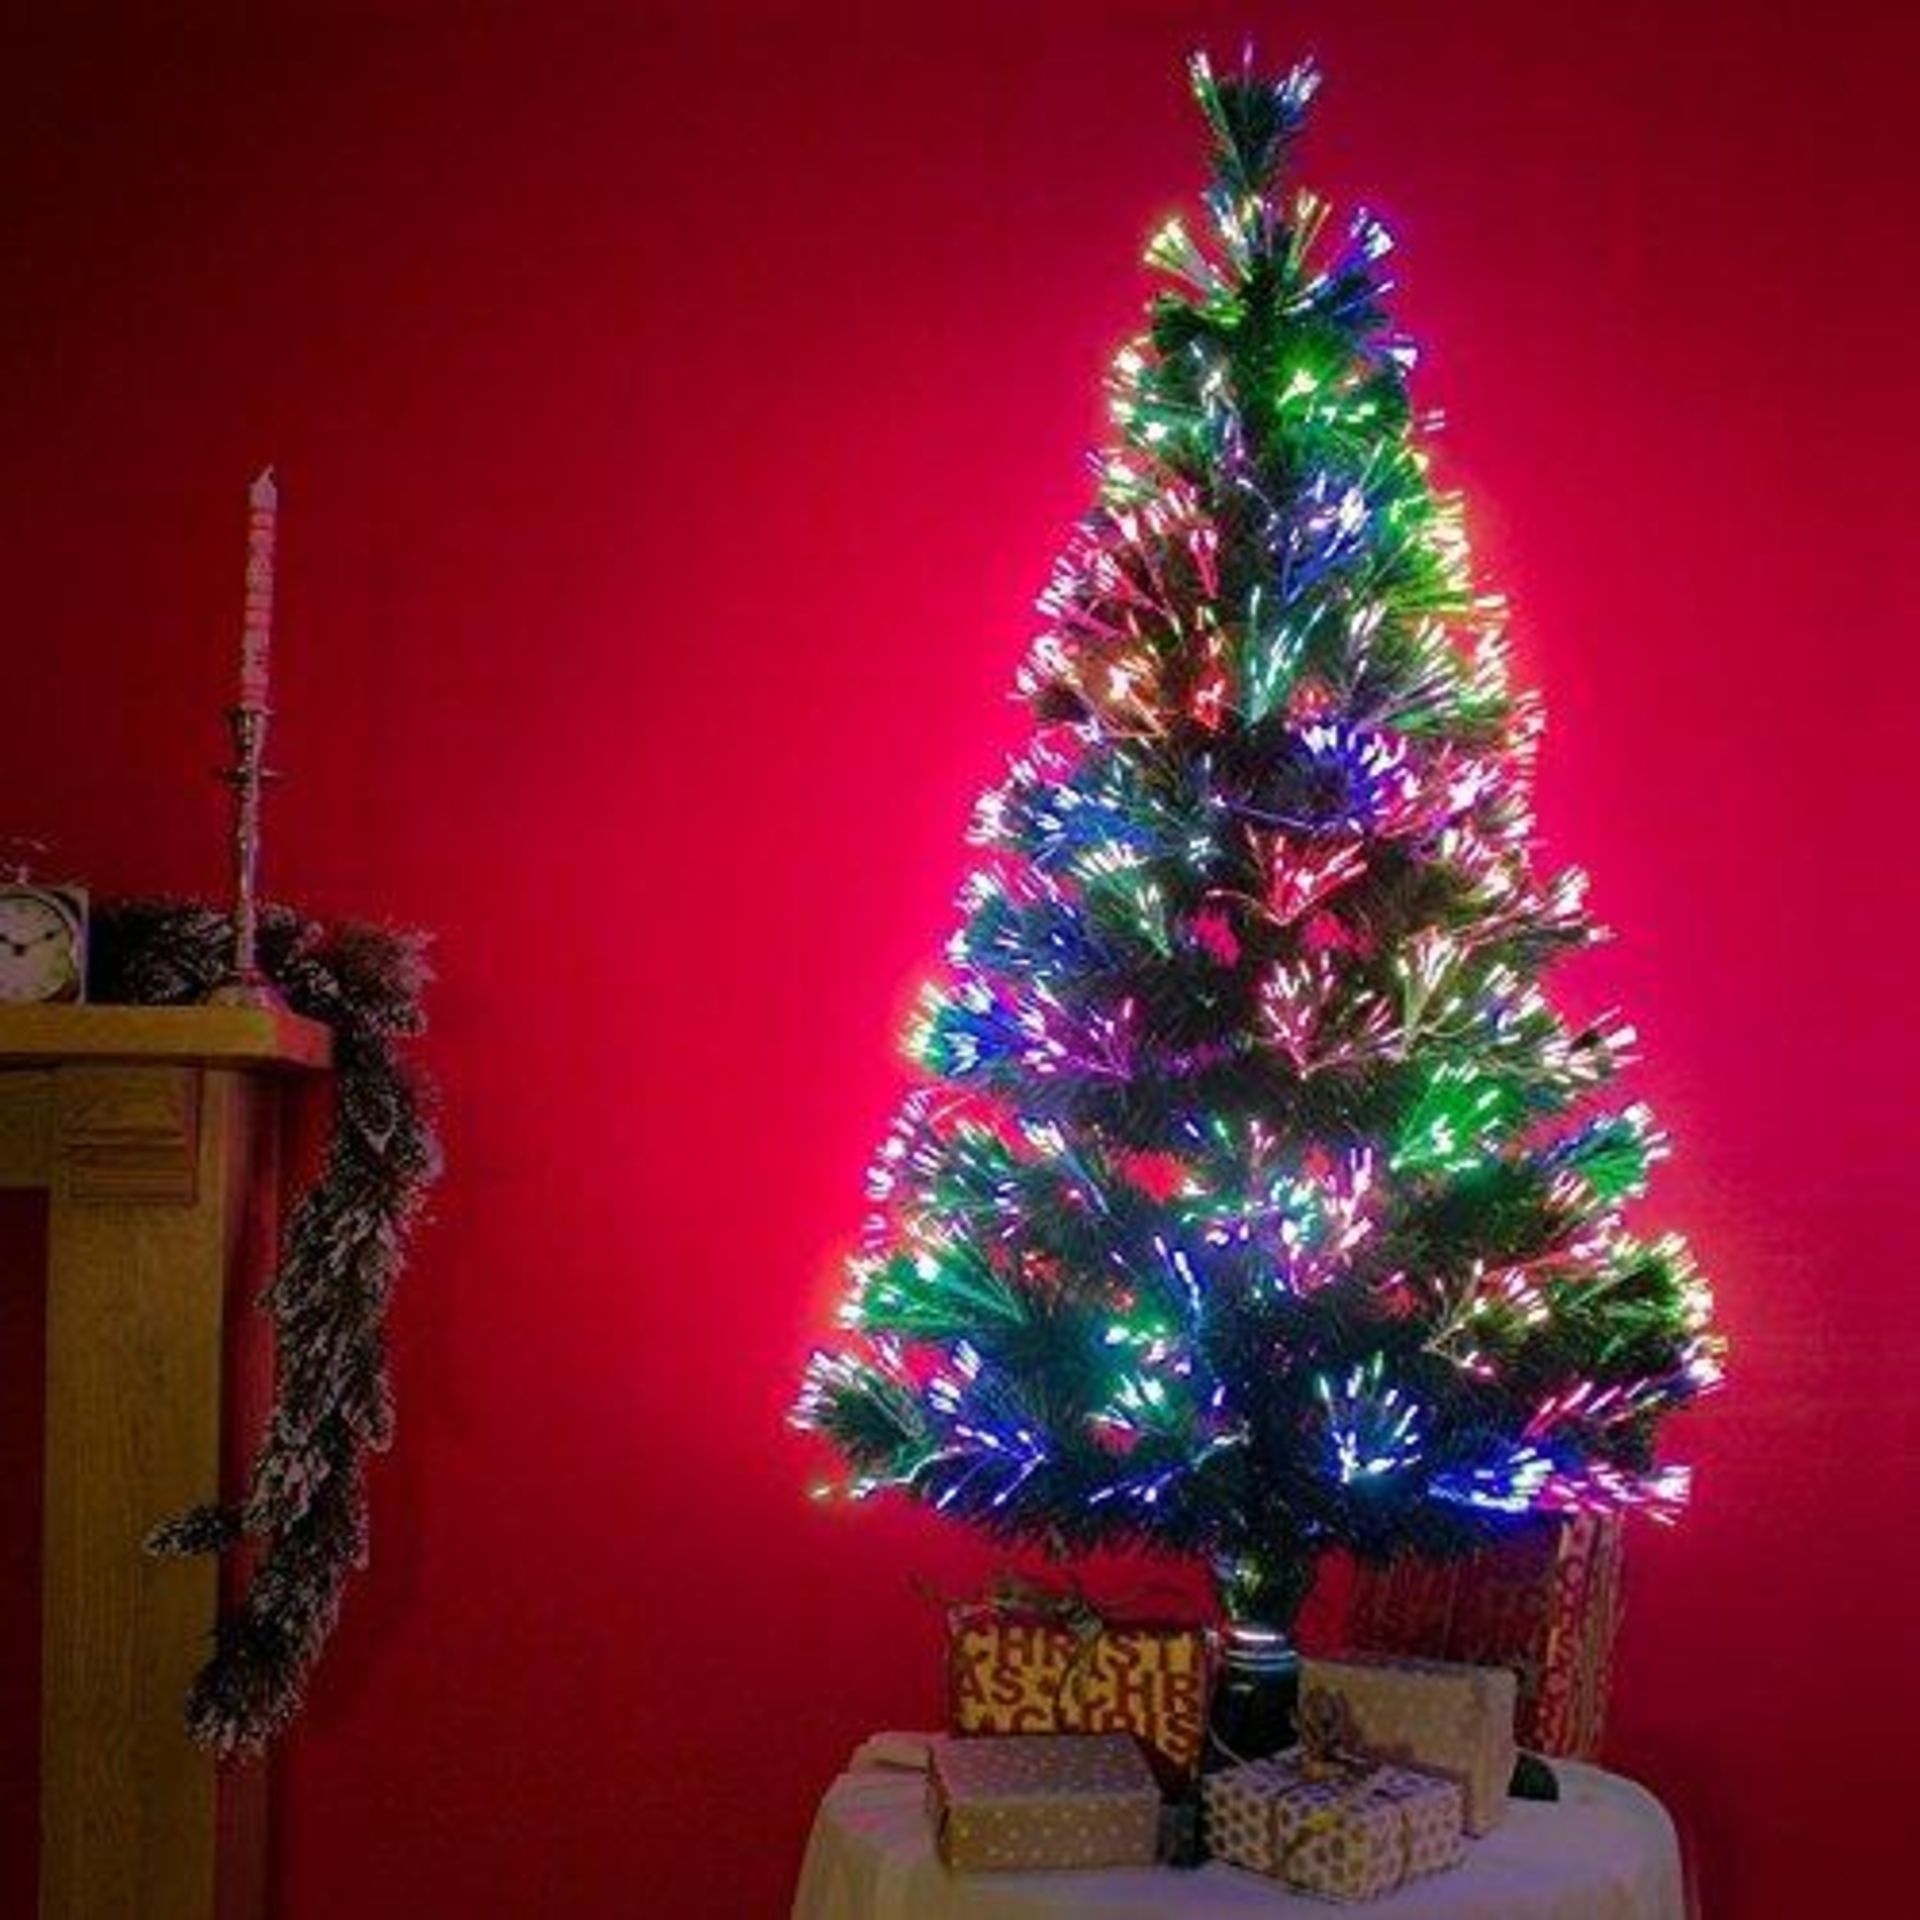 Lot 18003 - V Brand New 90CM Luxury Fibre Optic Christmas Tree With LEDs